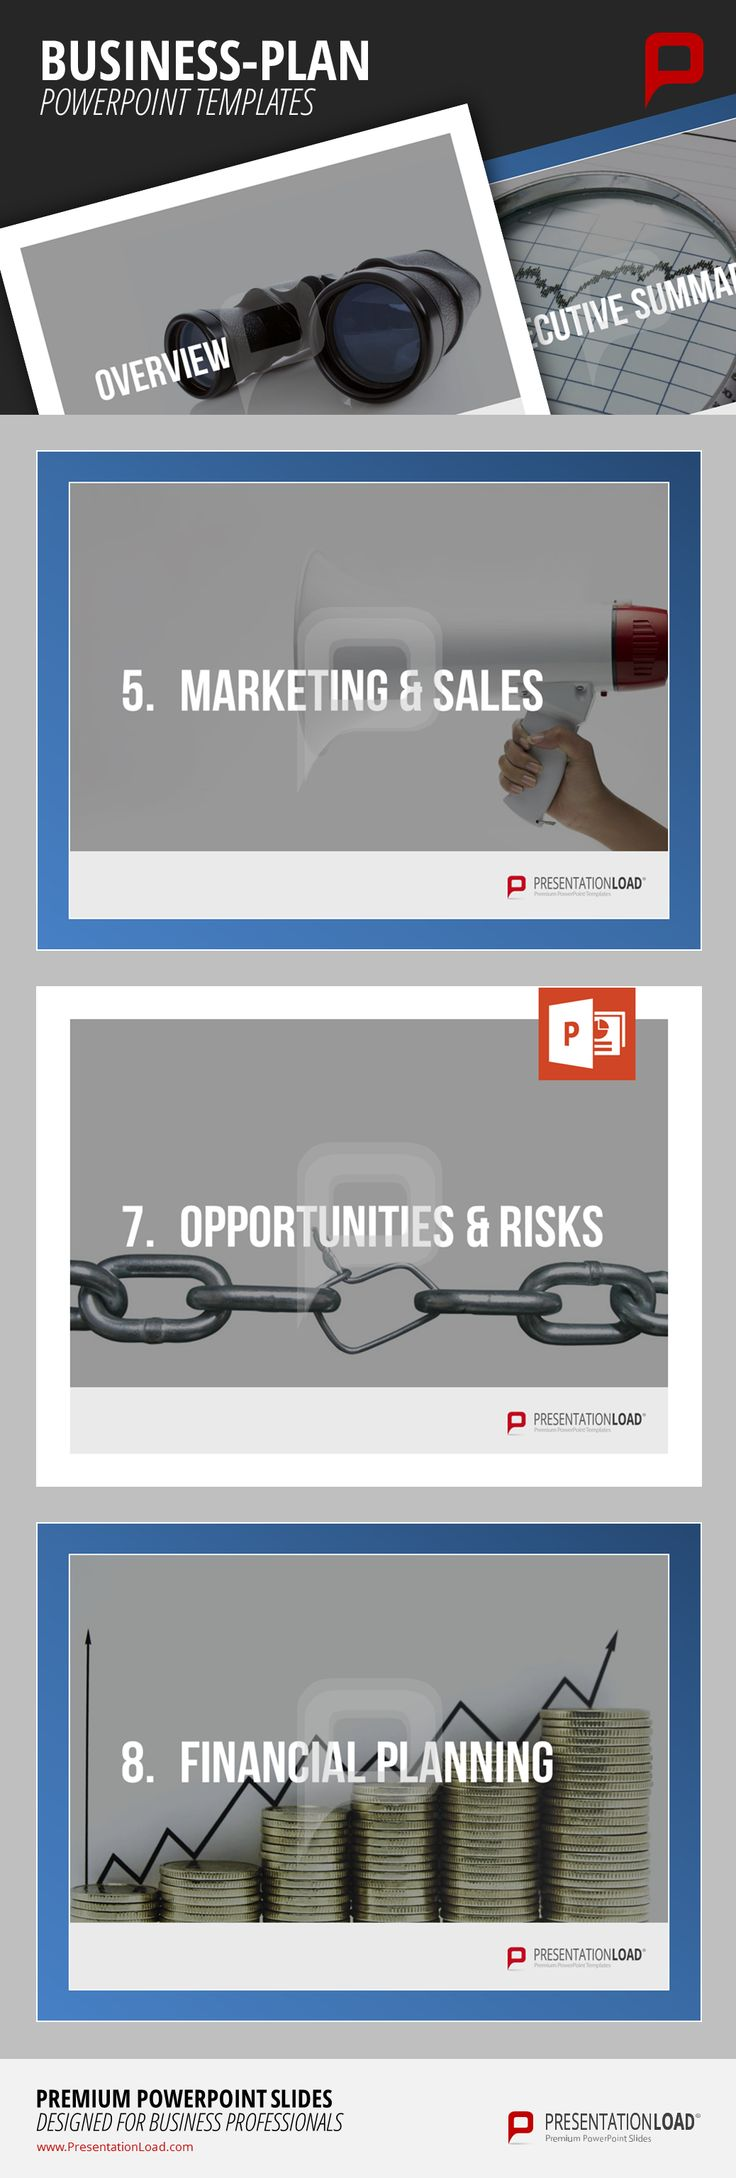 Benefit From Our Business Plan Powerpoint Templates A